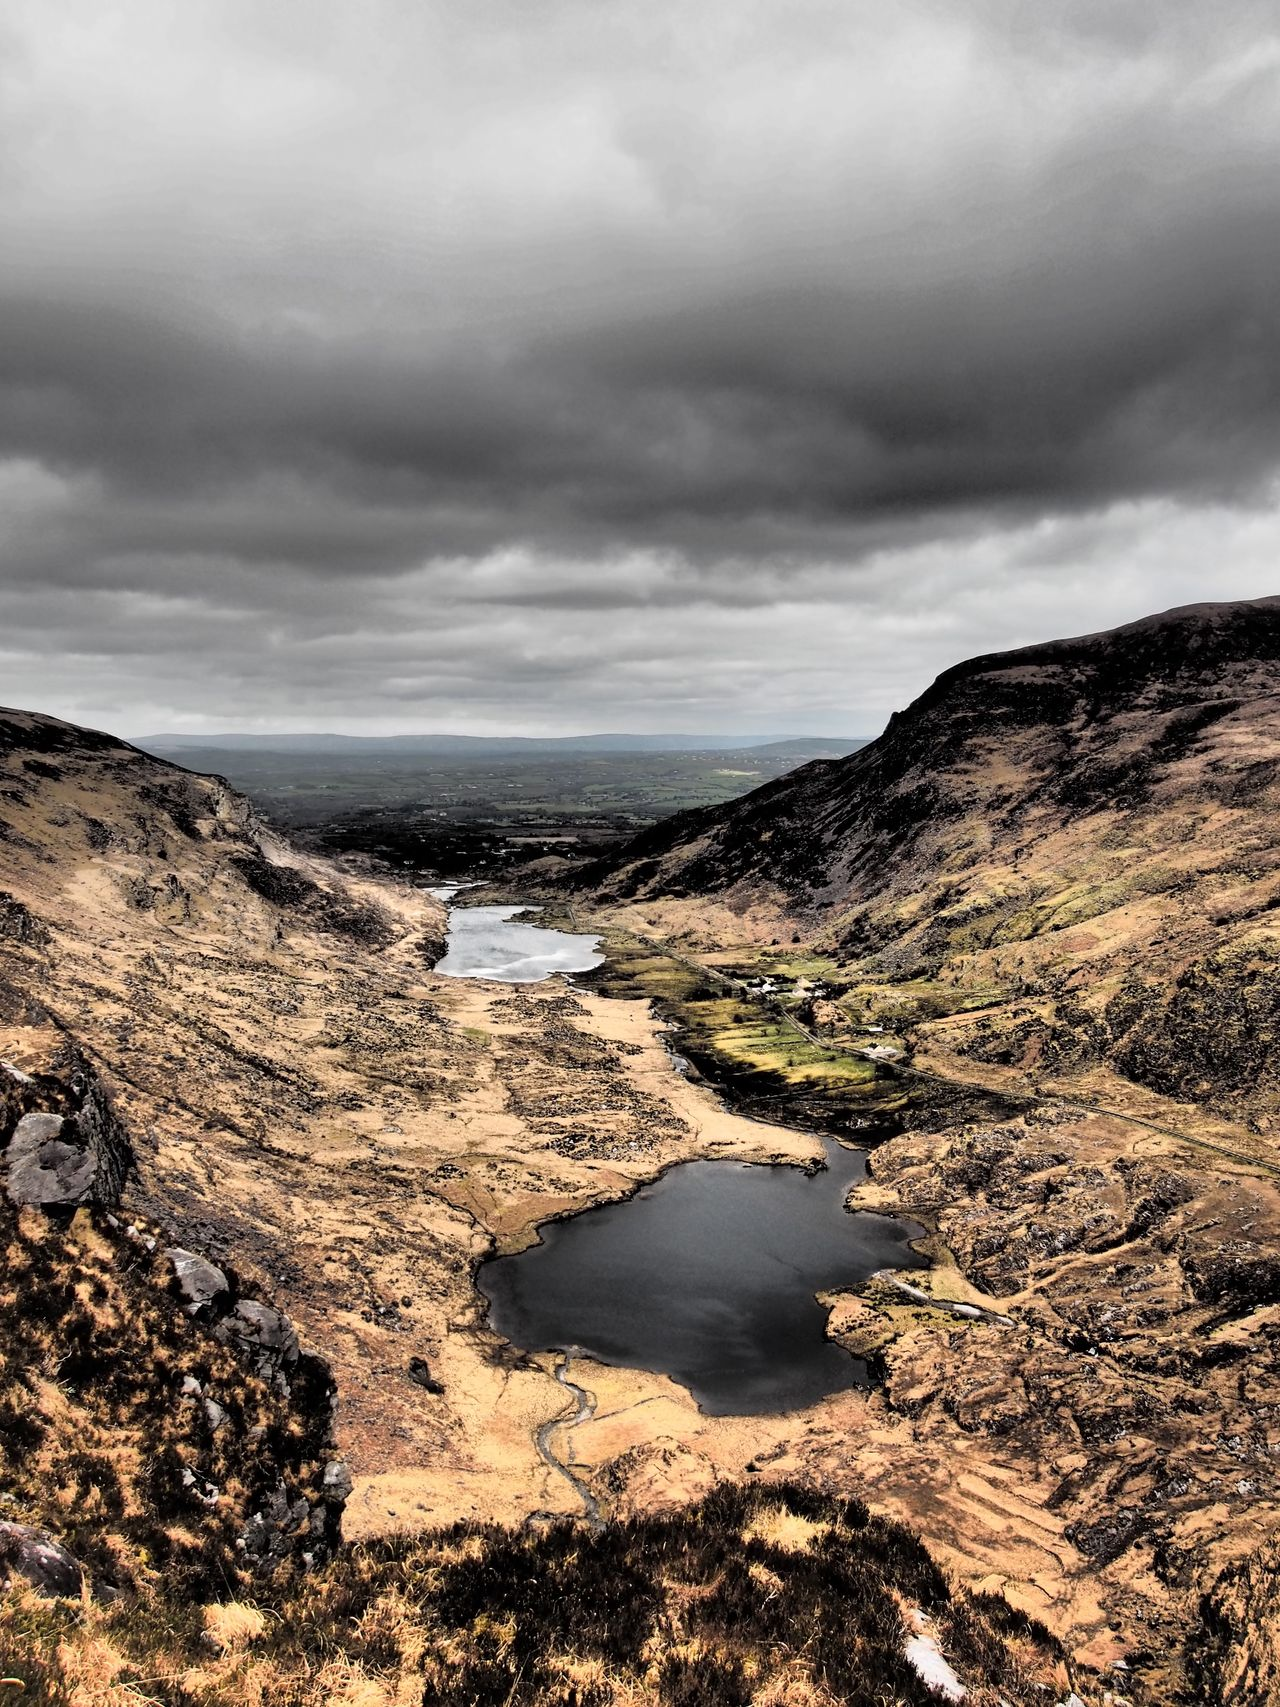 Lakes of Dunloe from Cnoc na dTarbh Co. Kerry Ireland Outdoors West Of Ireland Lake Lough Mountains Sky